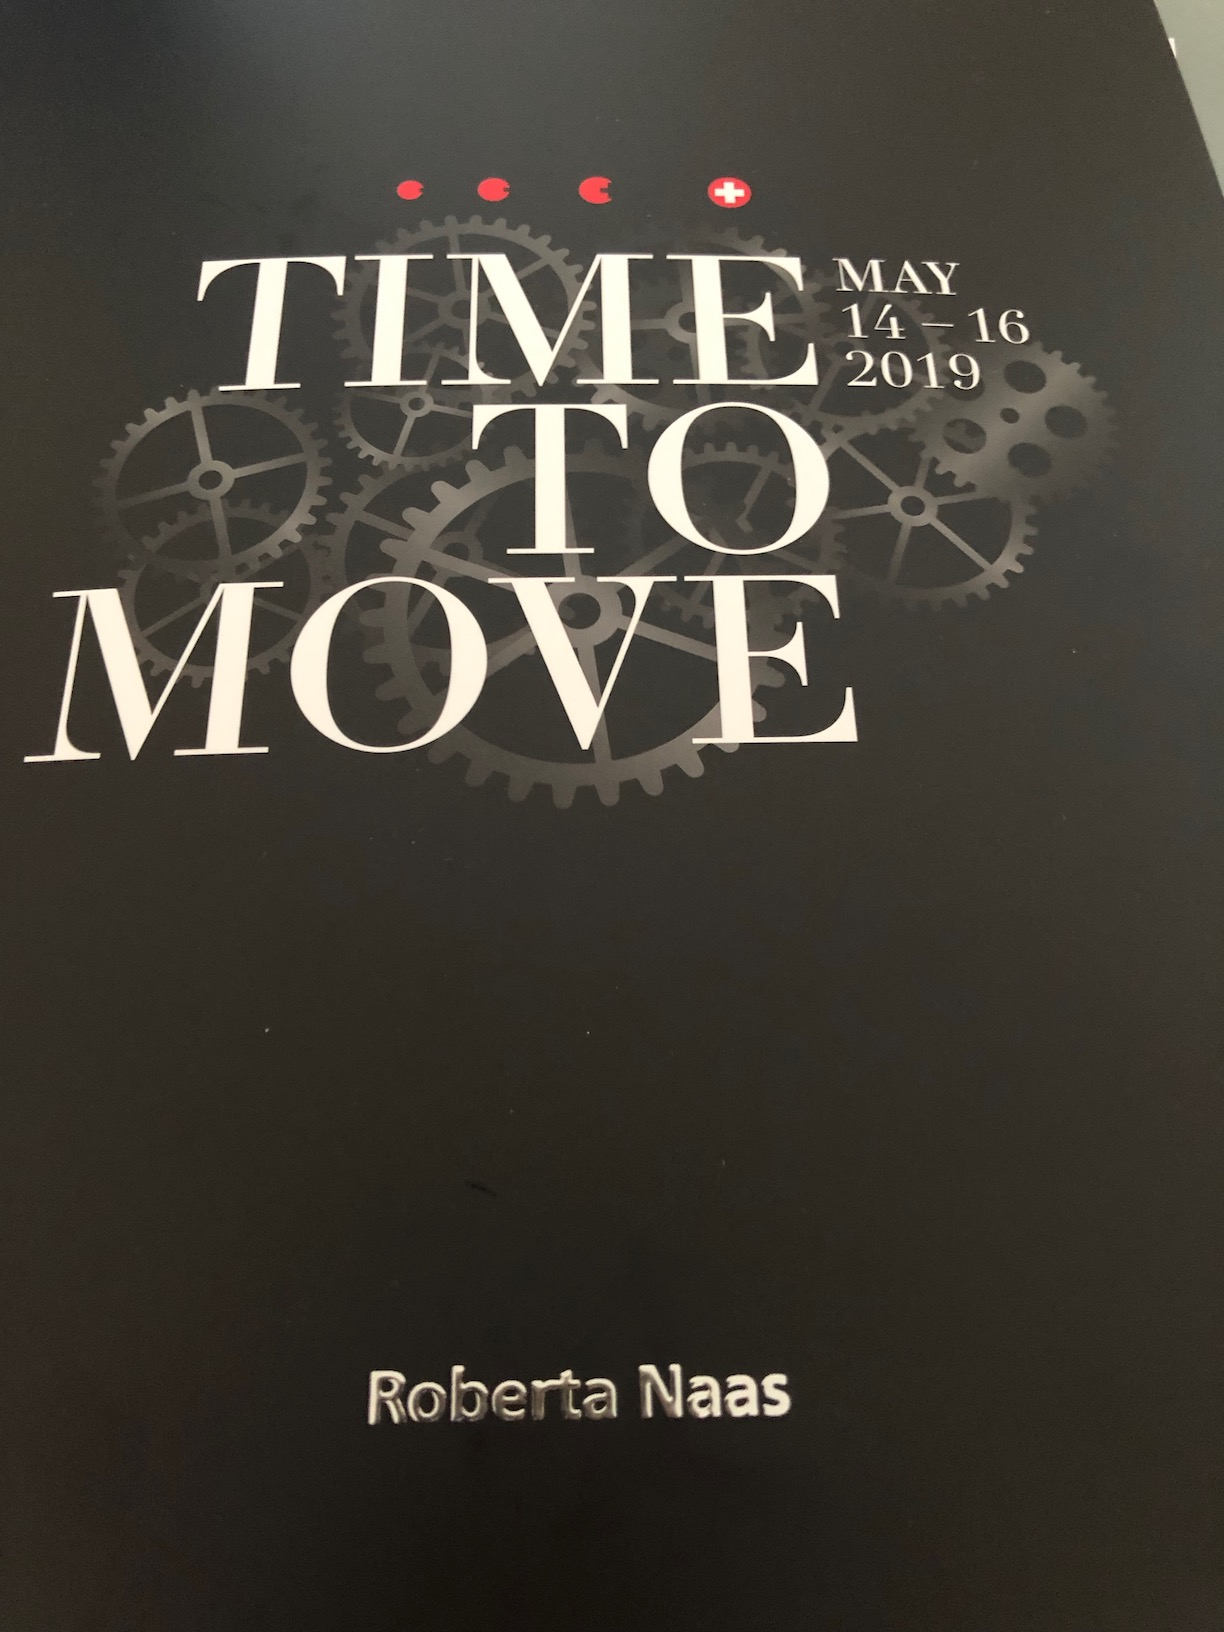 Swatch Group's First Annual Time to Move event.